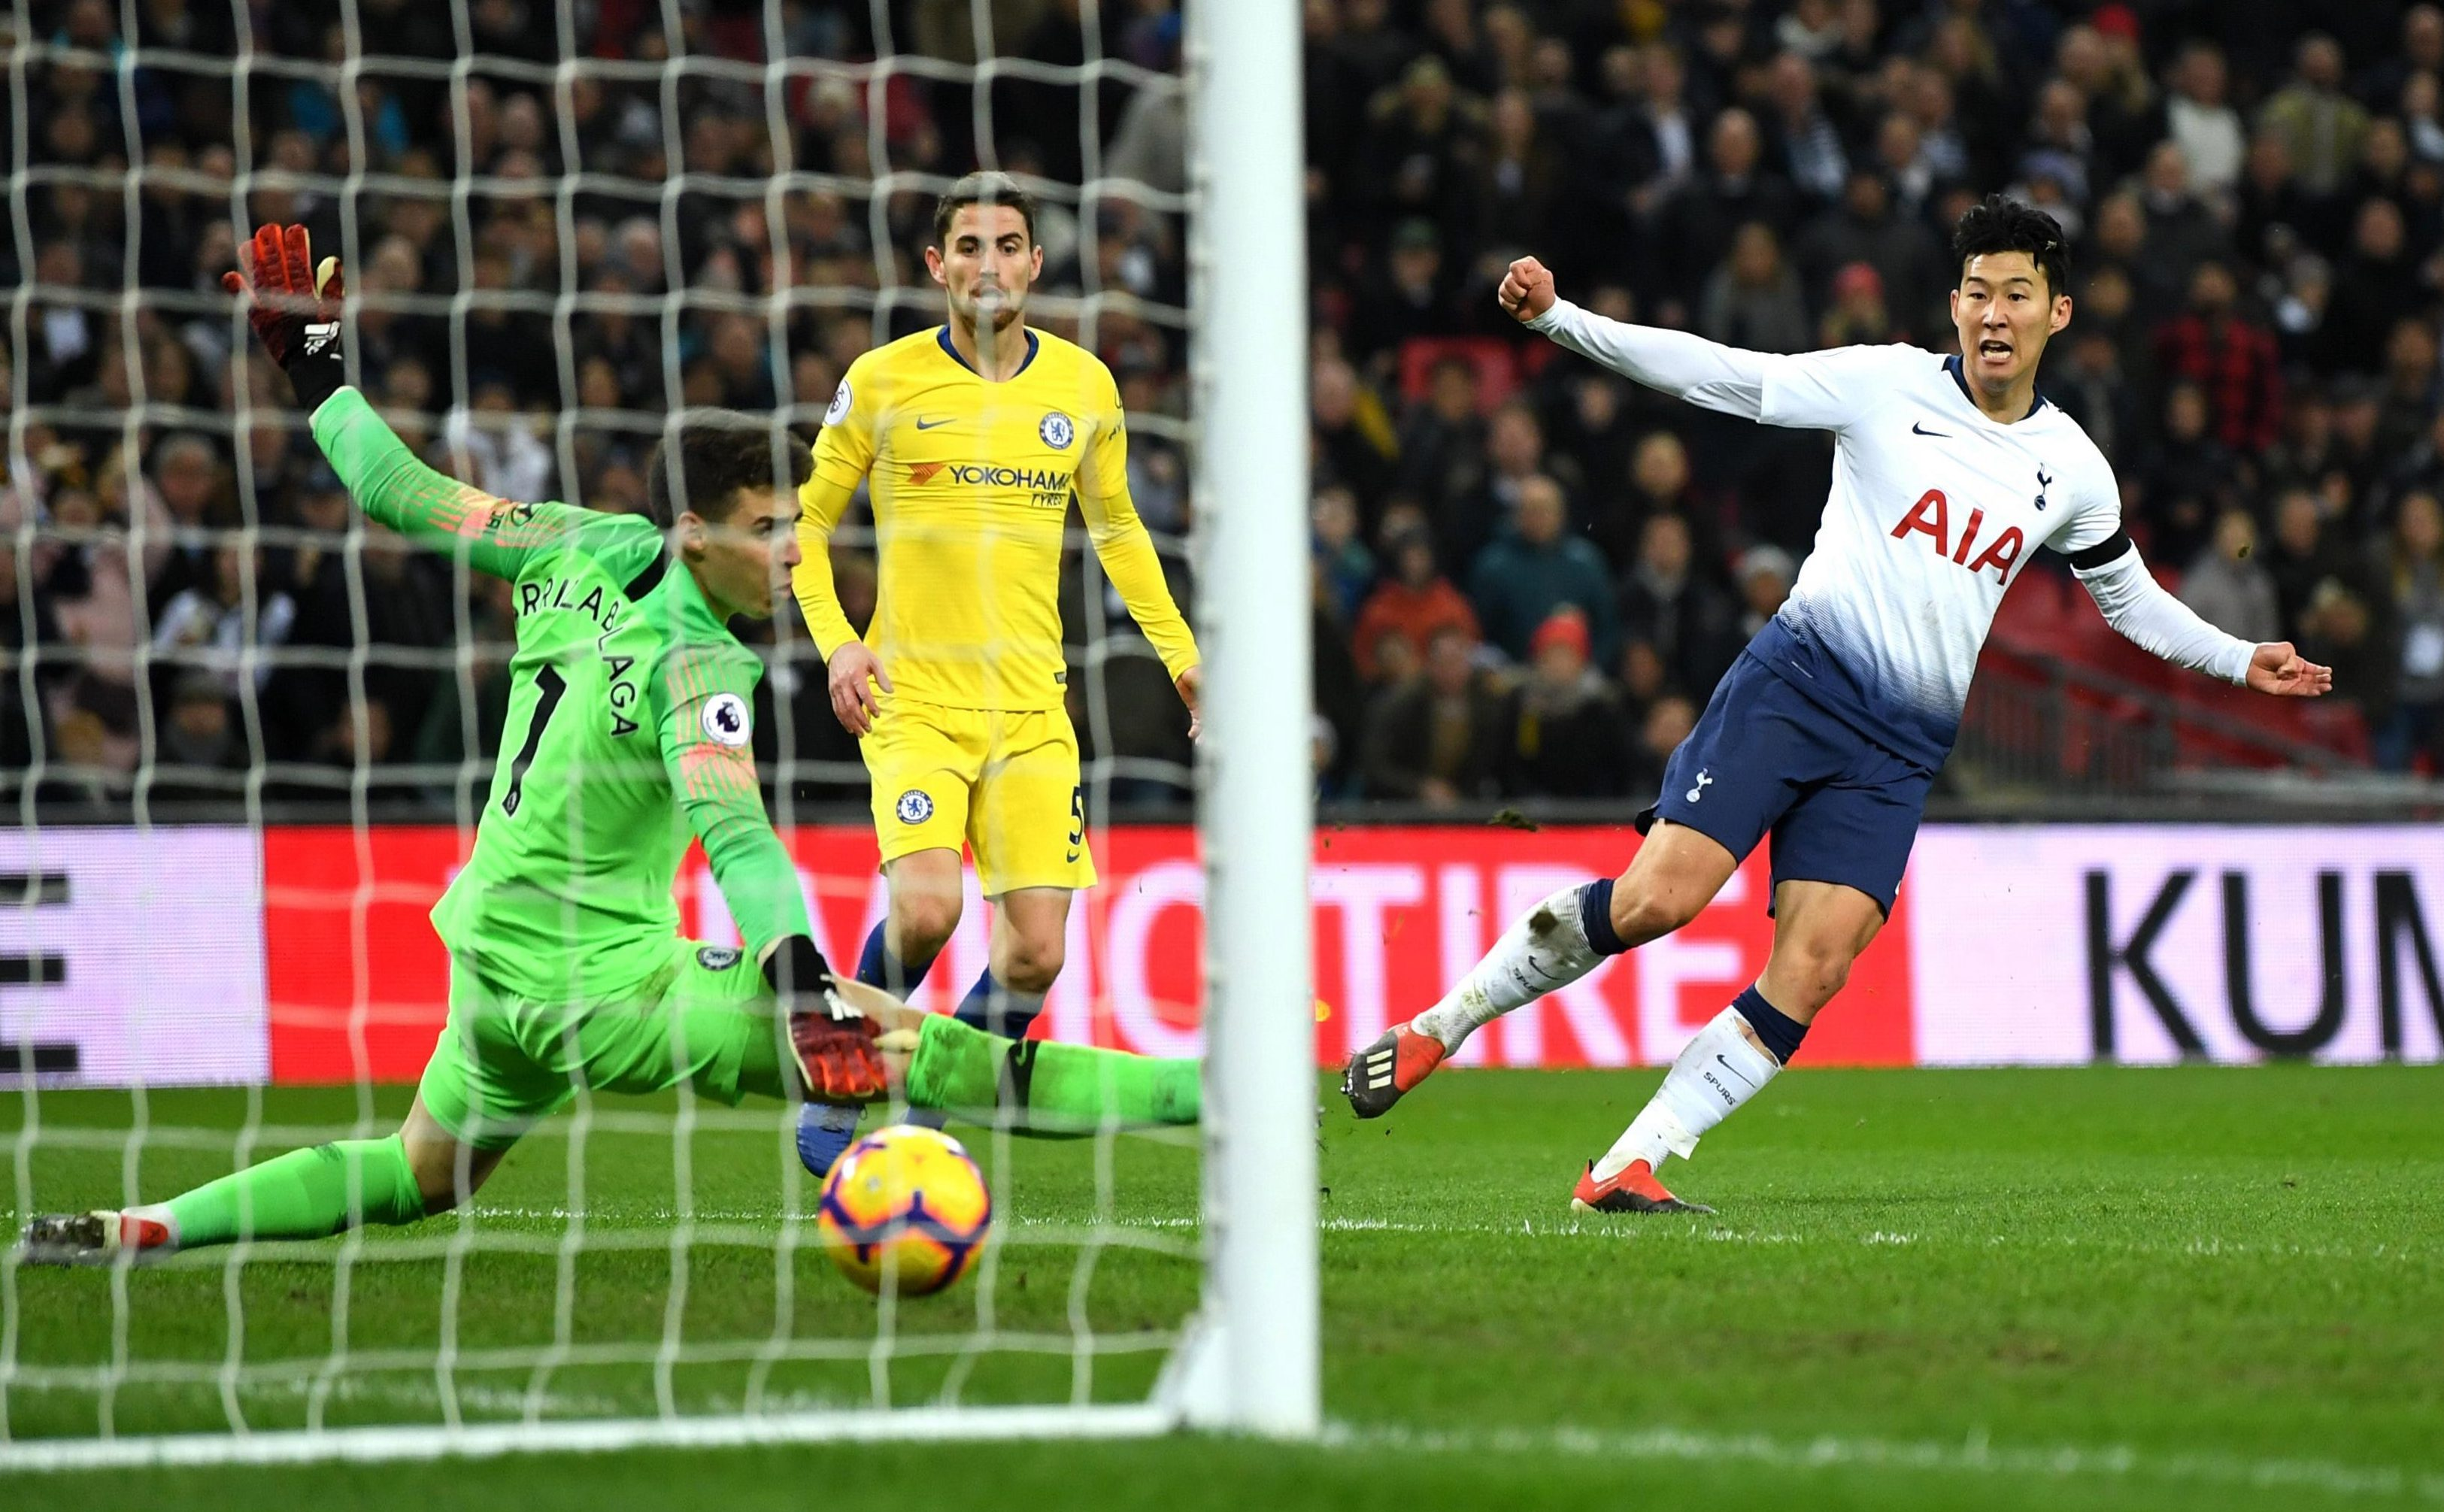 Son Heung-min scored a brilliant solo goal to secure the win over rivals Chelsea